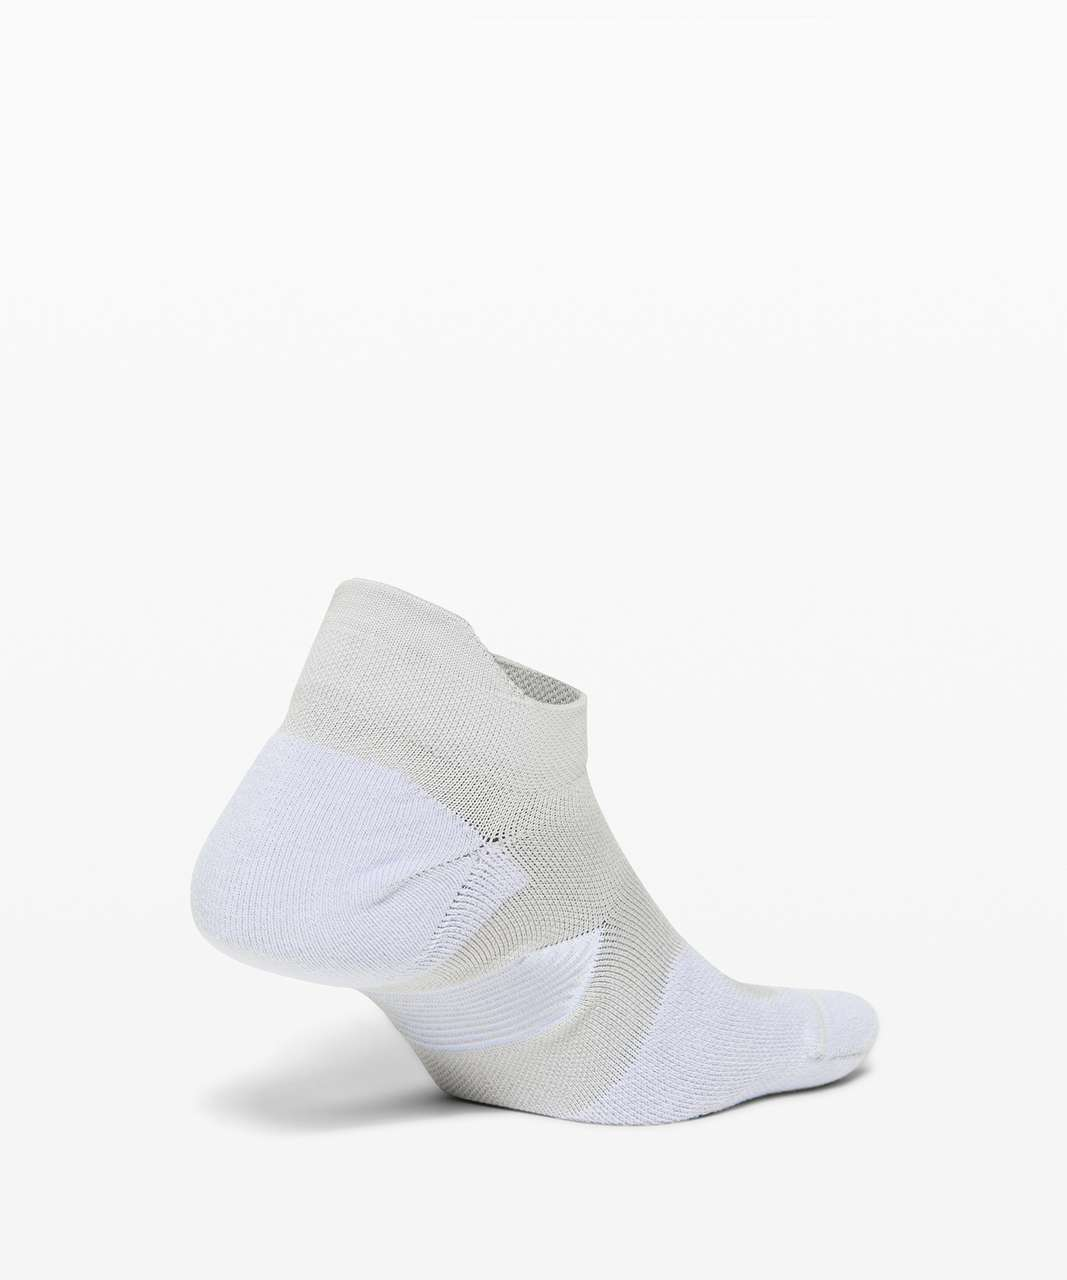 Lululemon Speed Sock *Silver - Stargaze / White